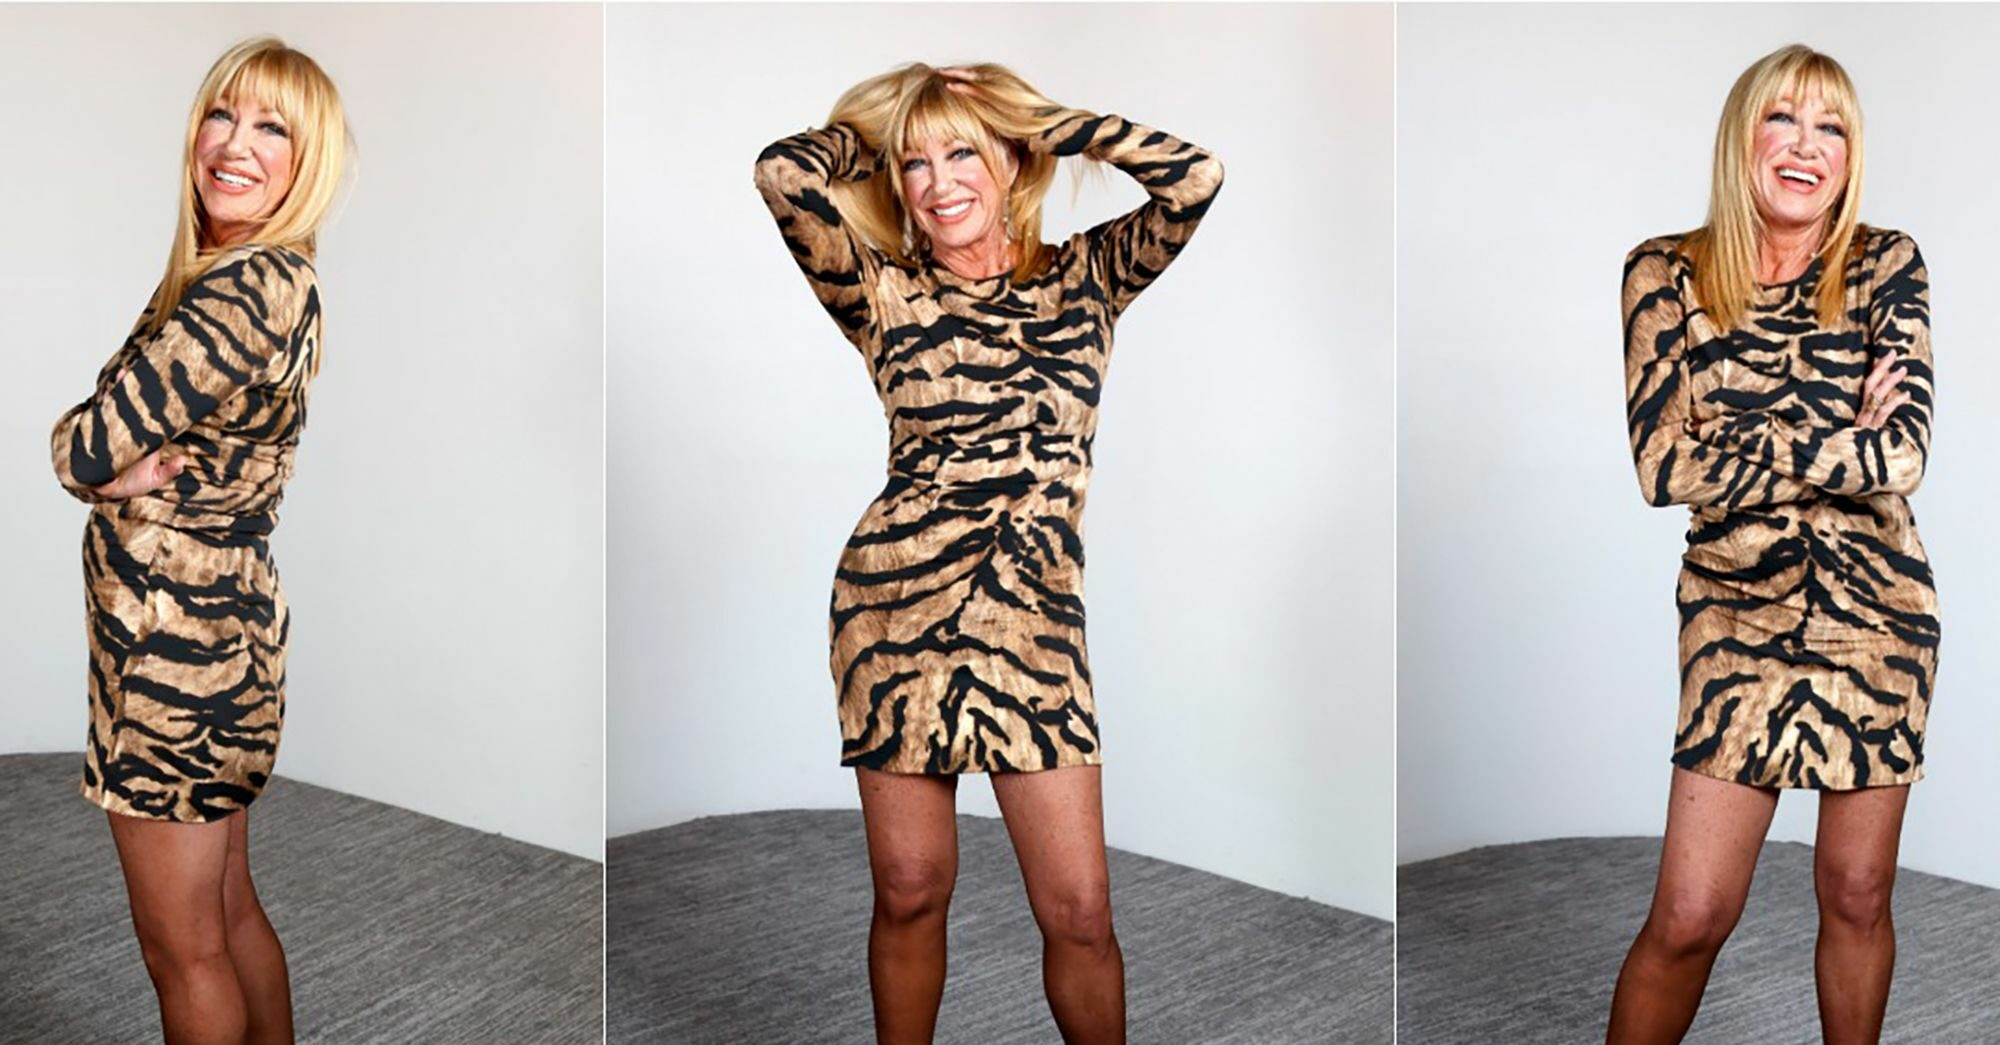 Suzanne Somers Reveals How She Keeps Her Libido So High at 73